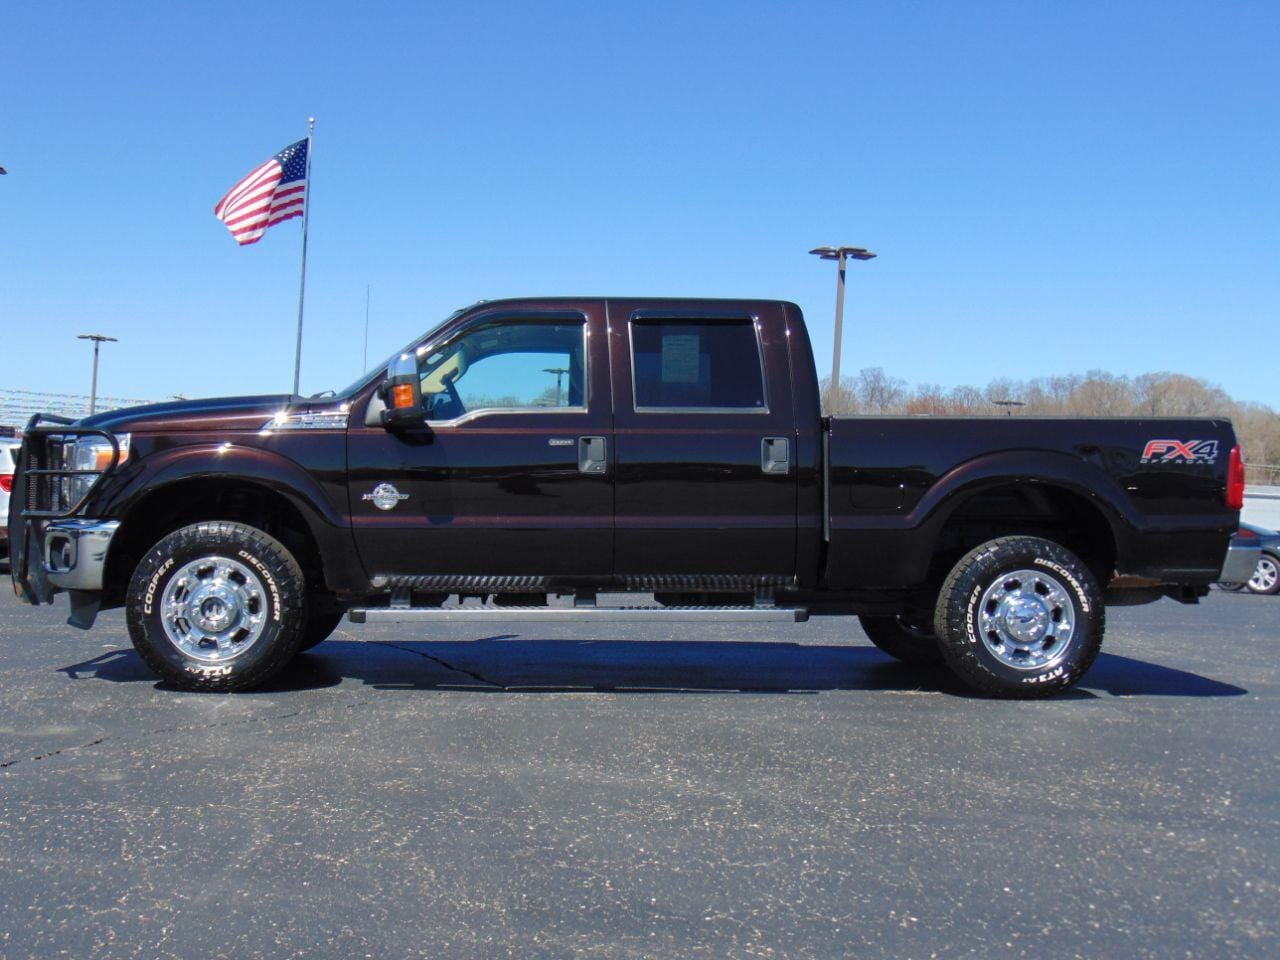 2014 Ford Super Duty F-350 SRW XLT Crew Cab Pickup - Standard Bed